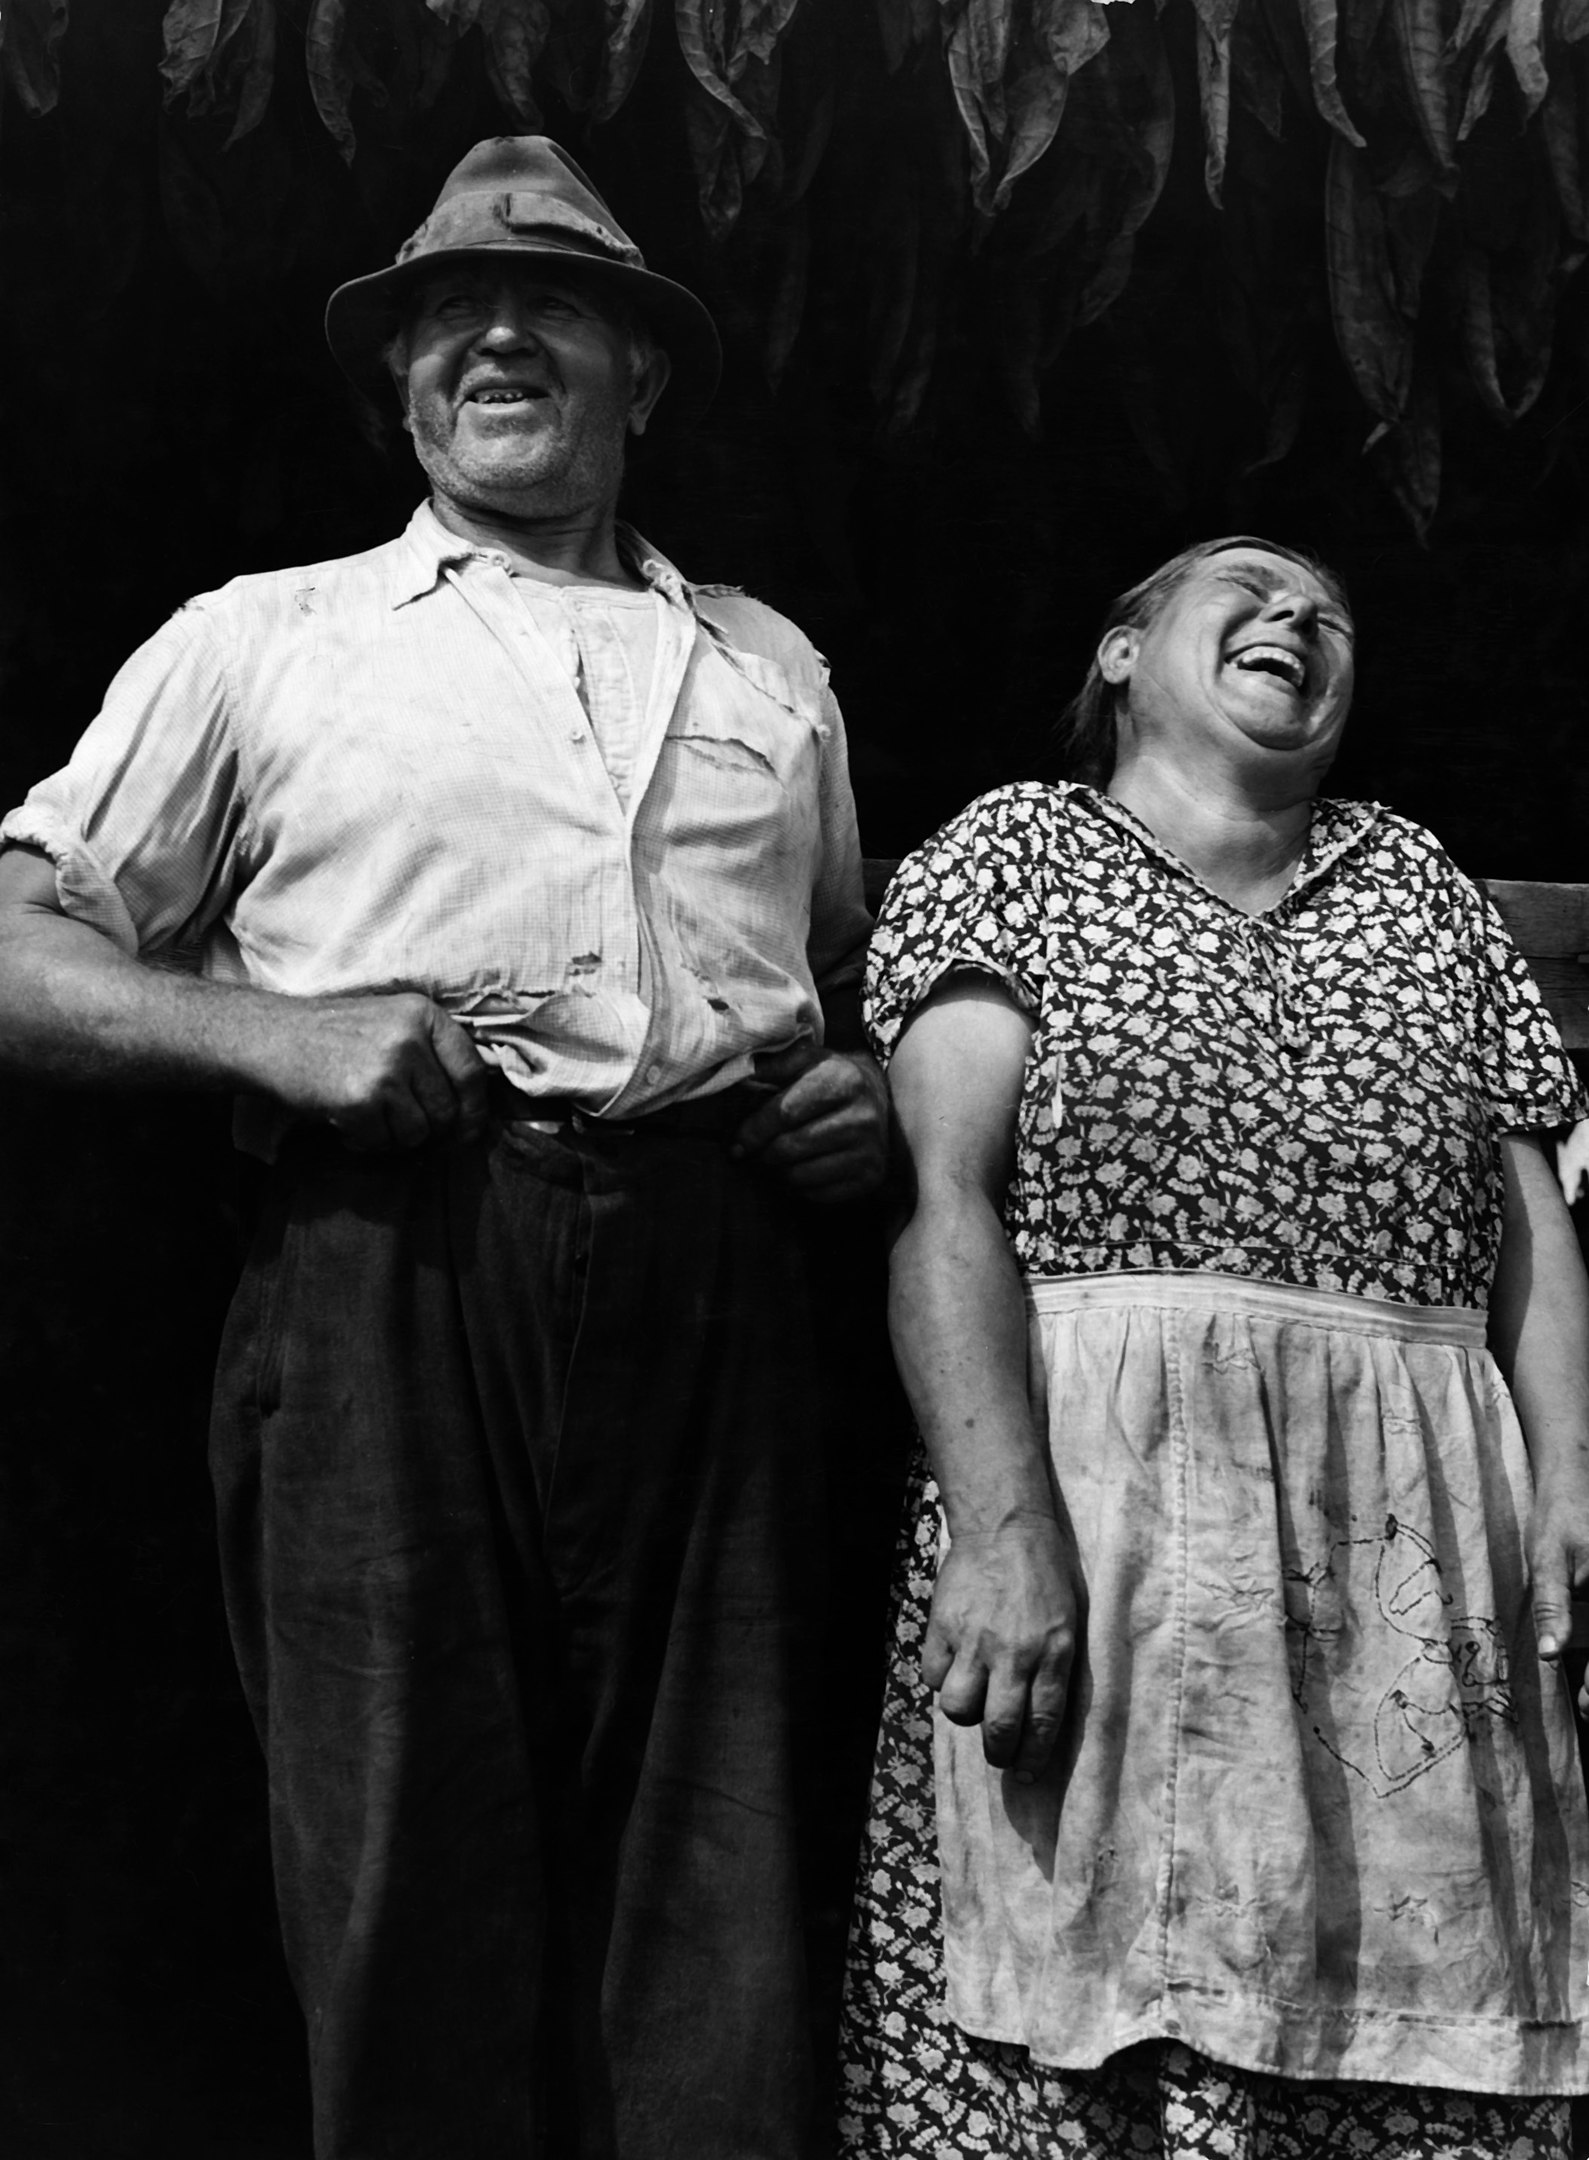 1589px-jack_delano_tobacco_famers_near_windsor_locks_conn_1940.jpg